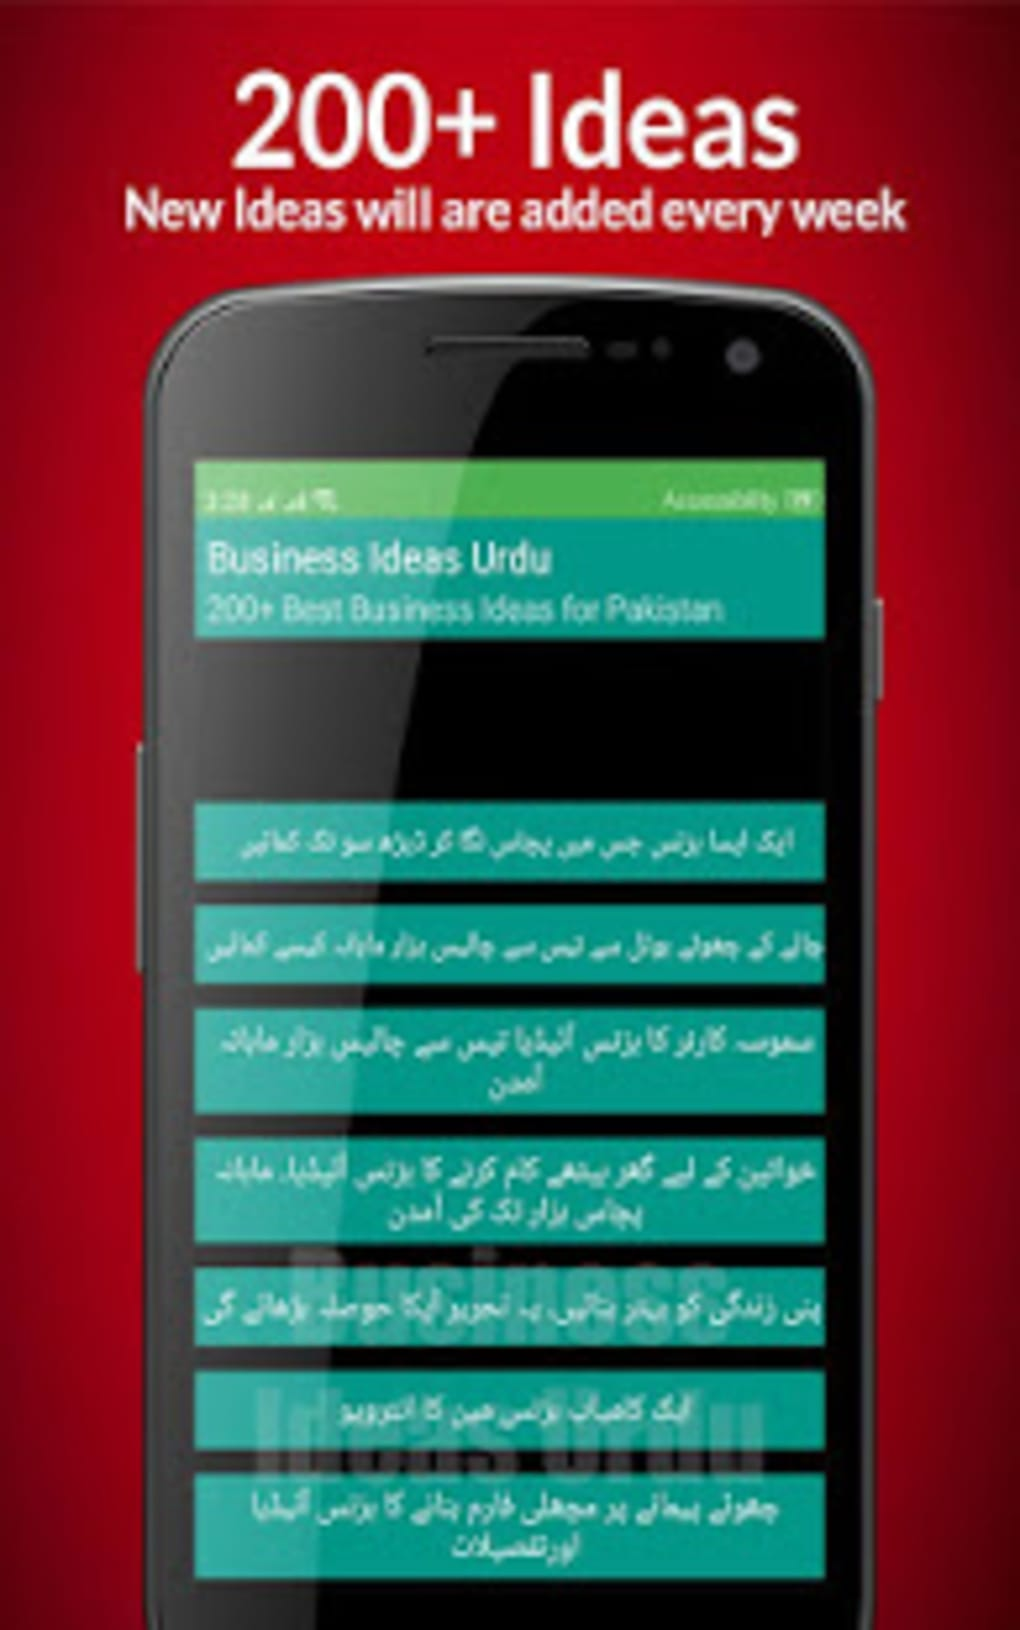 Business Ideas Urdu Easy Business In Pakistan For Android Download